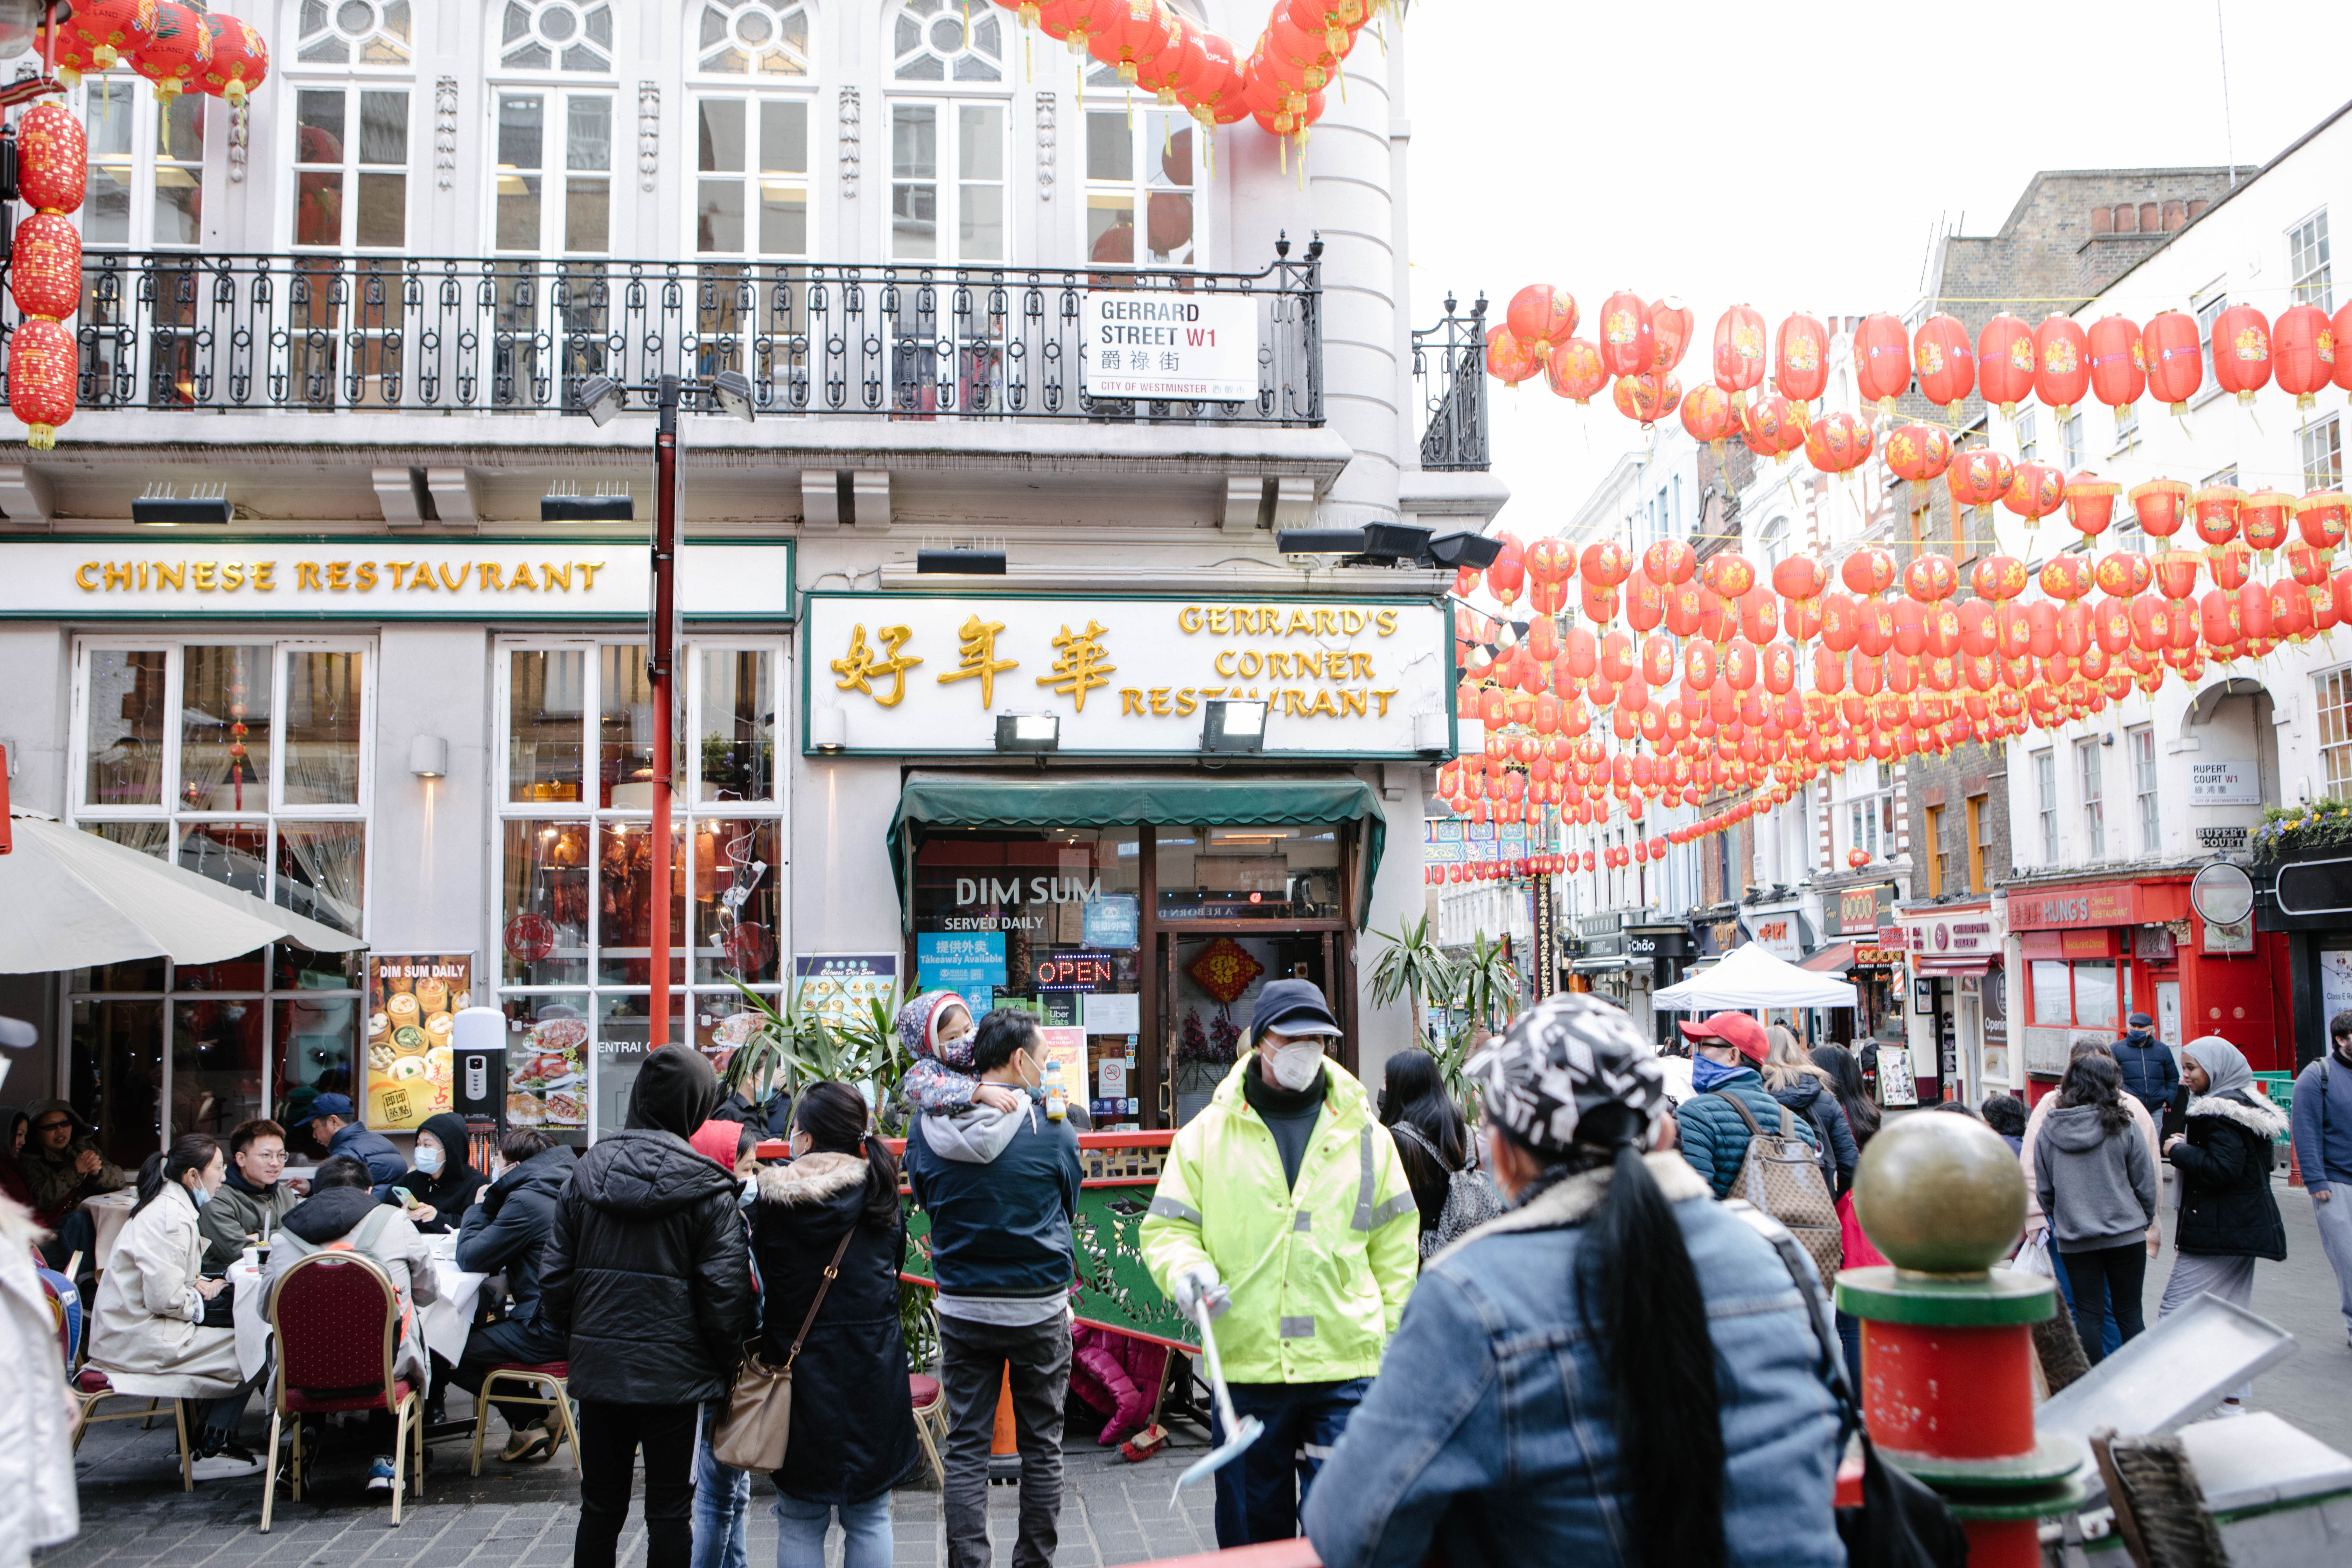 Cafes and restaurants in Gerrard Street in Chinatown are open for outdoor dining